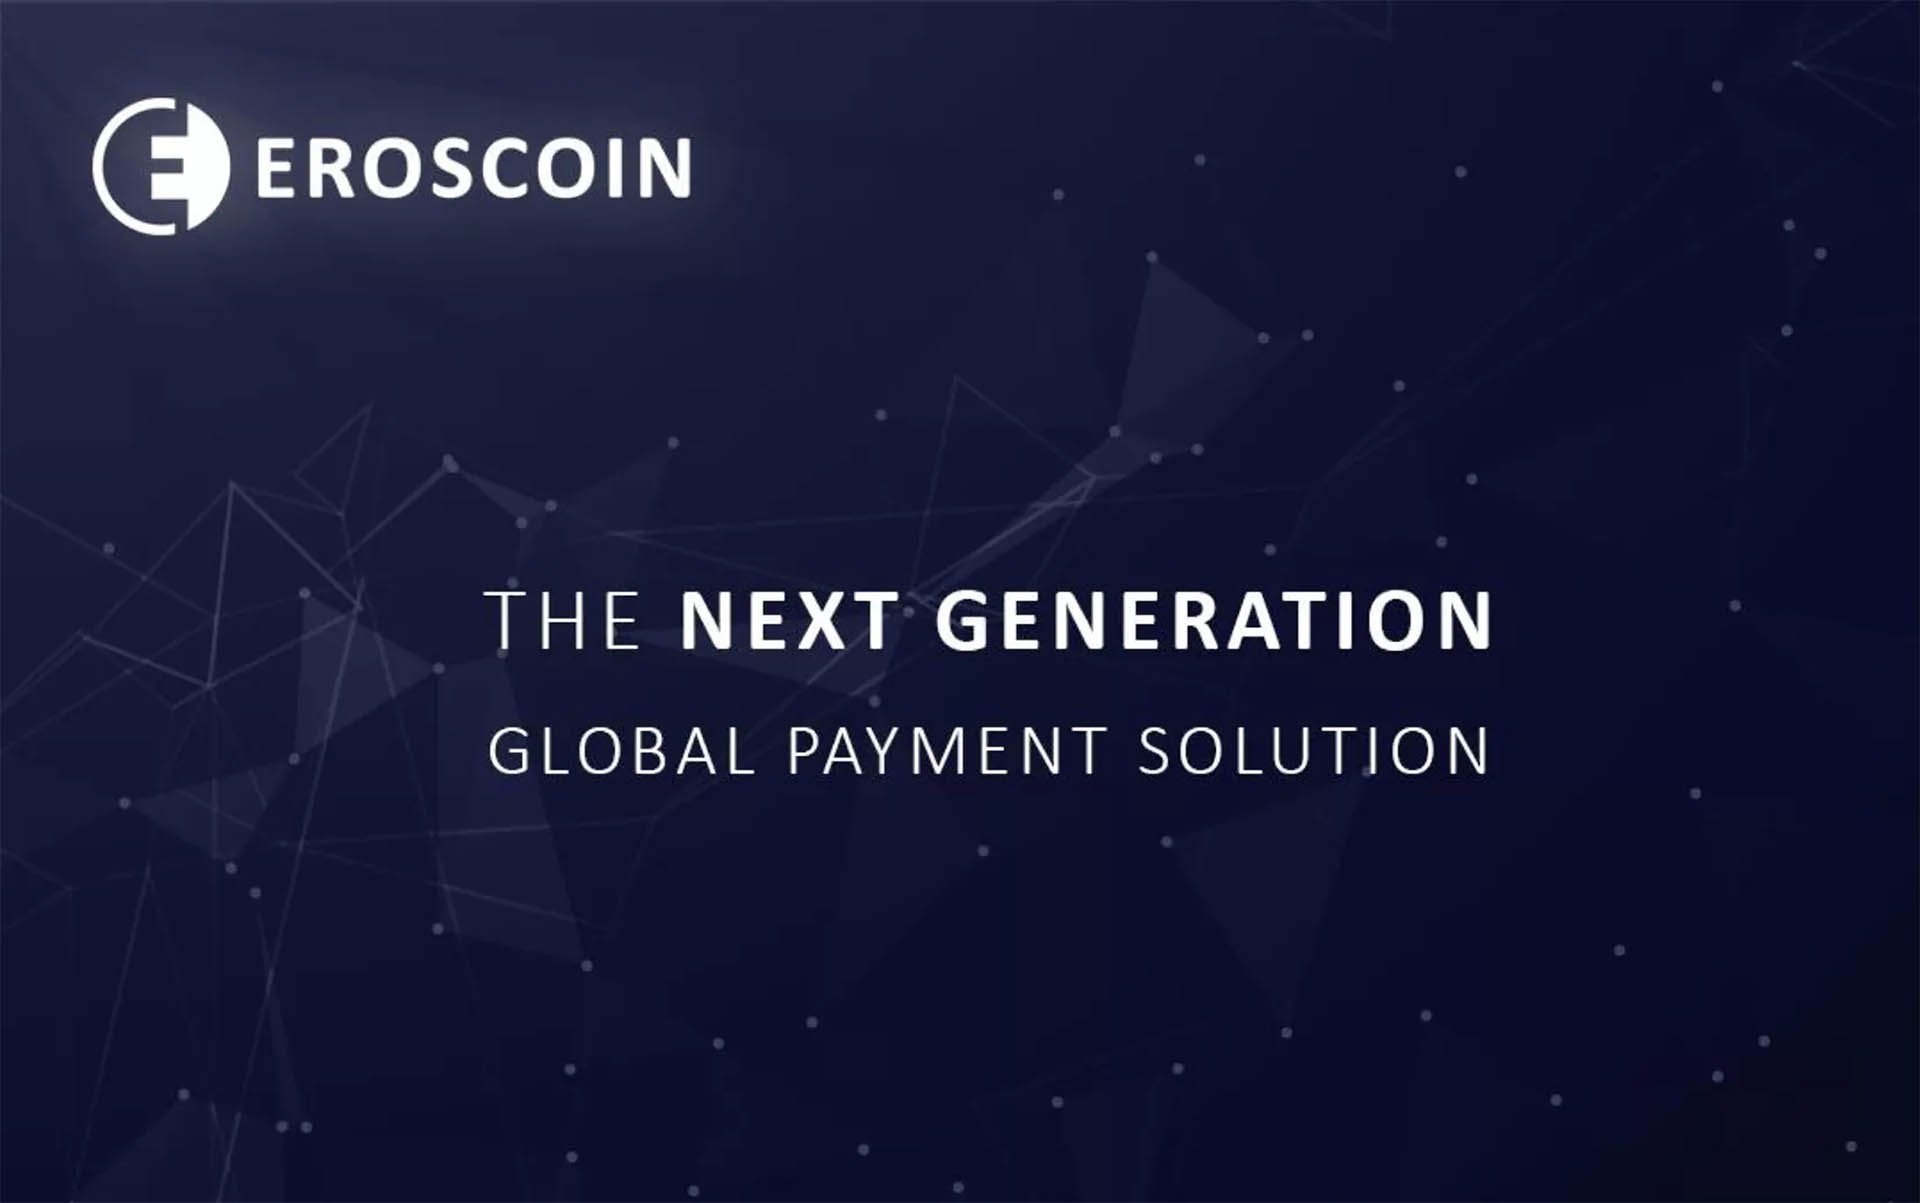 EROSCOIN Introduces a Next Generation Global Payment Solution